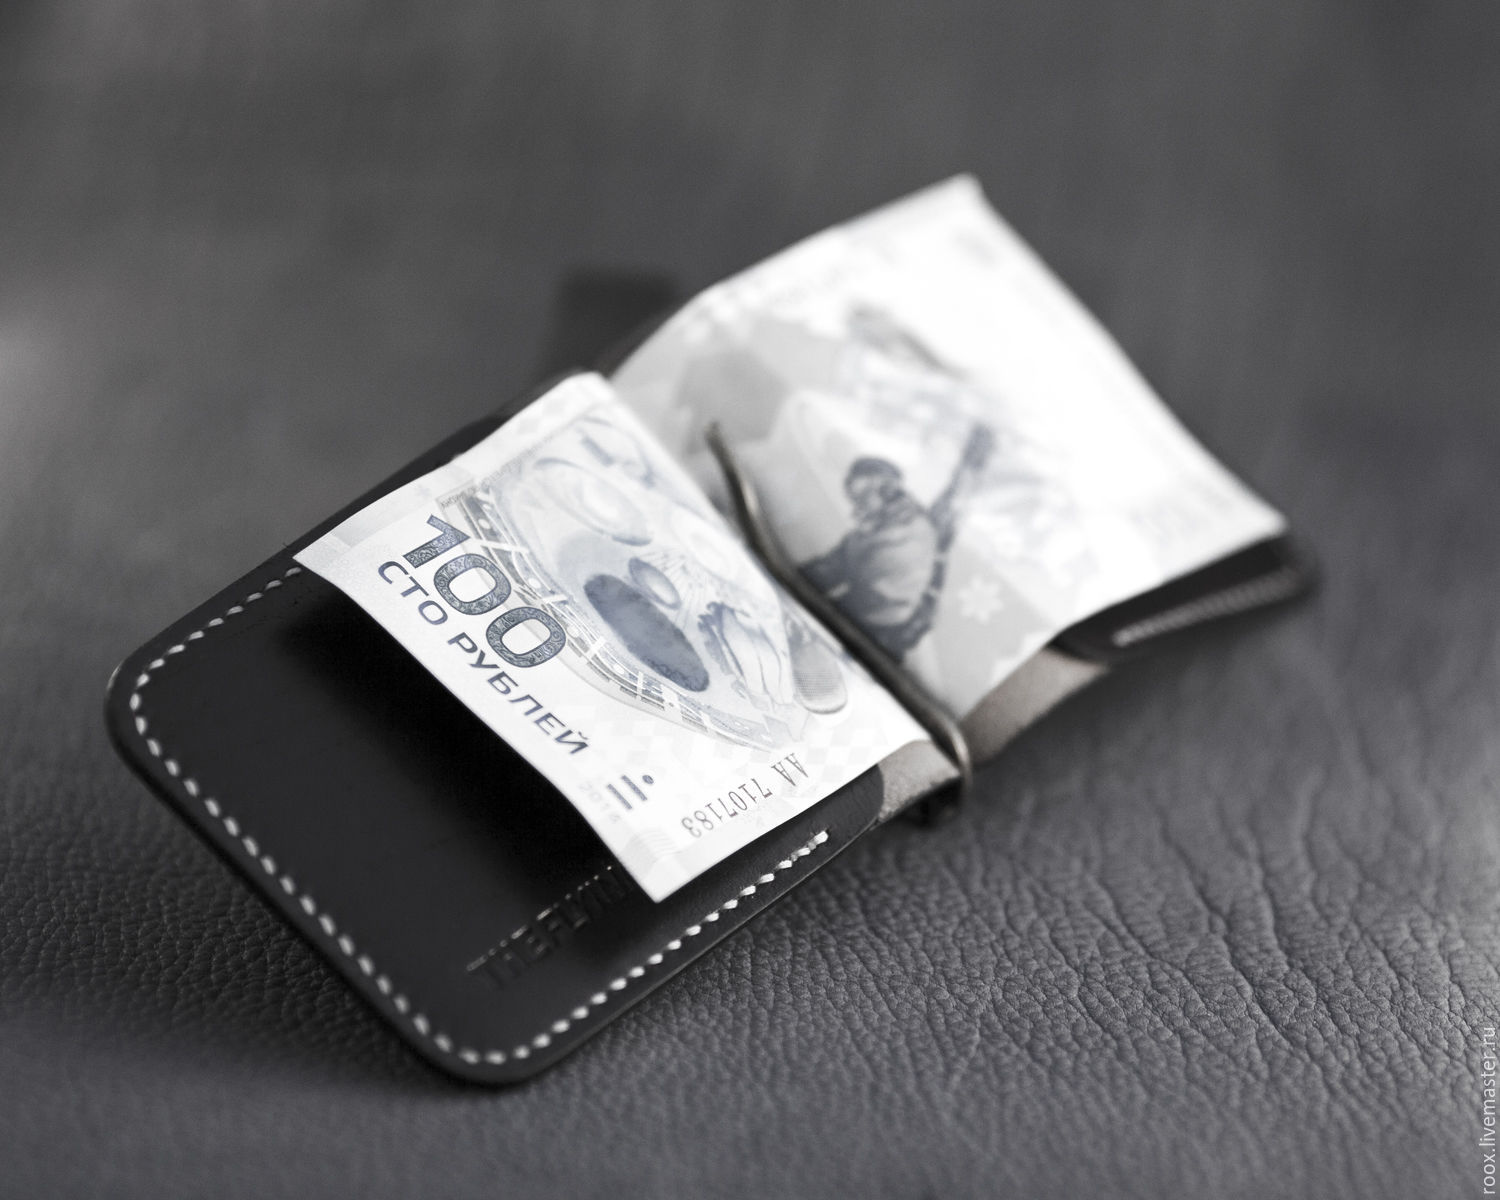 Wallet money clip crocodile leather shop online on livemaster my wallets business card holders handmade wallet money clip crocodile leather theflyingturtle magicingreecefo Choice Image